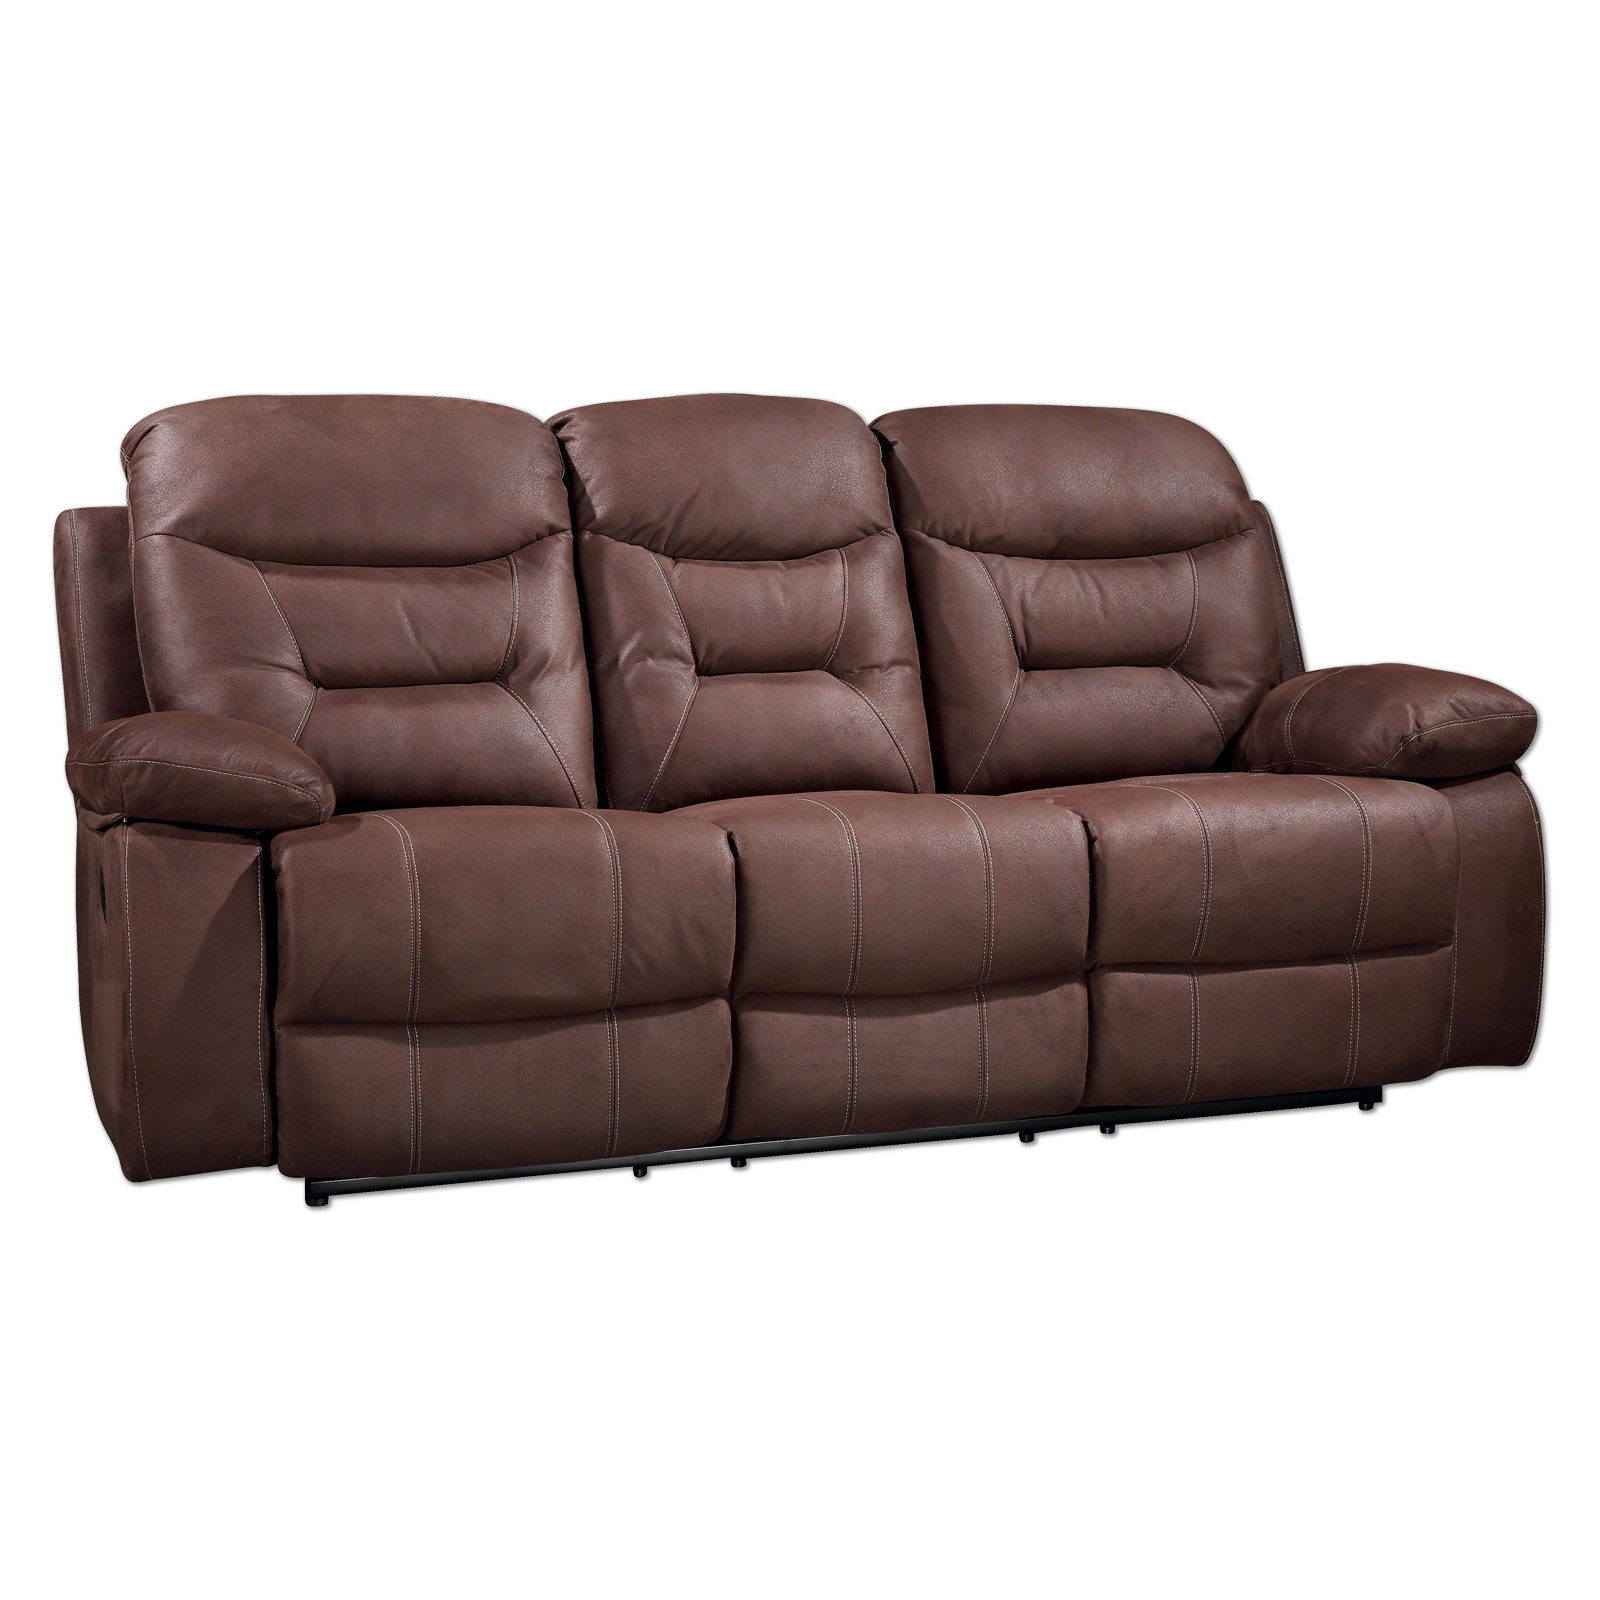 3 Sitzer Sofa braun Relaxfunktion